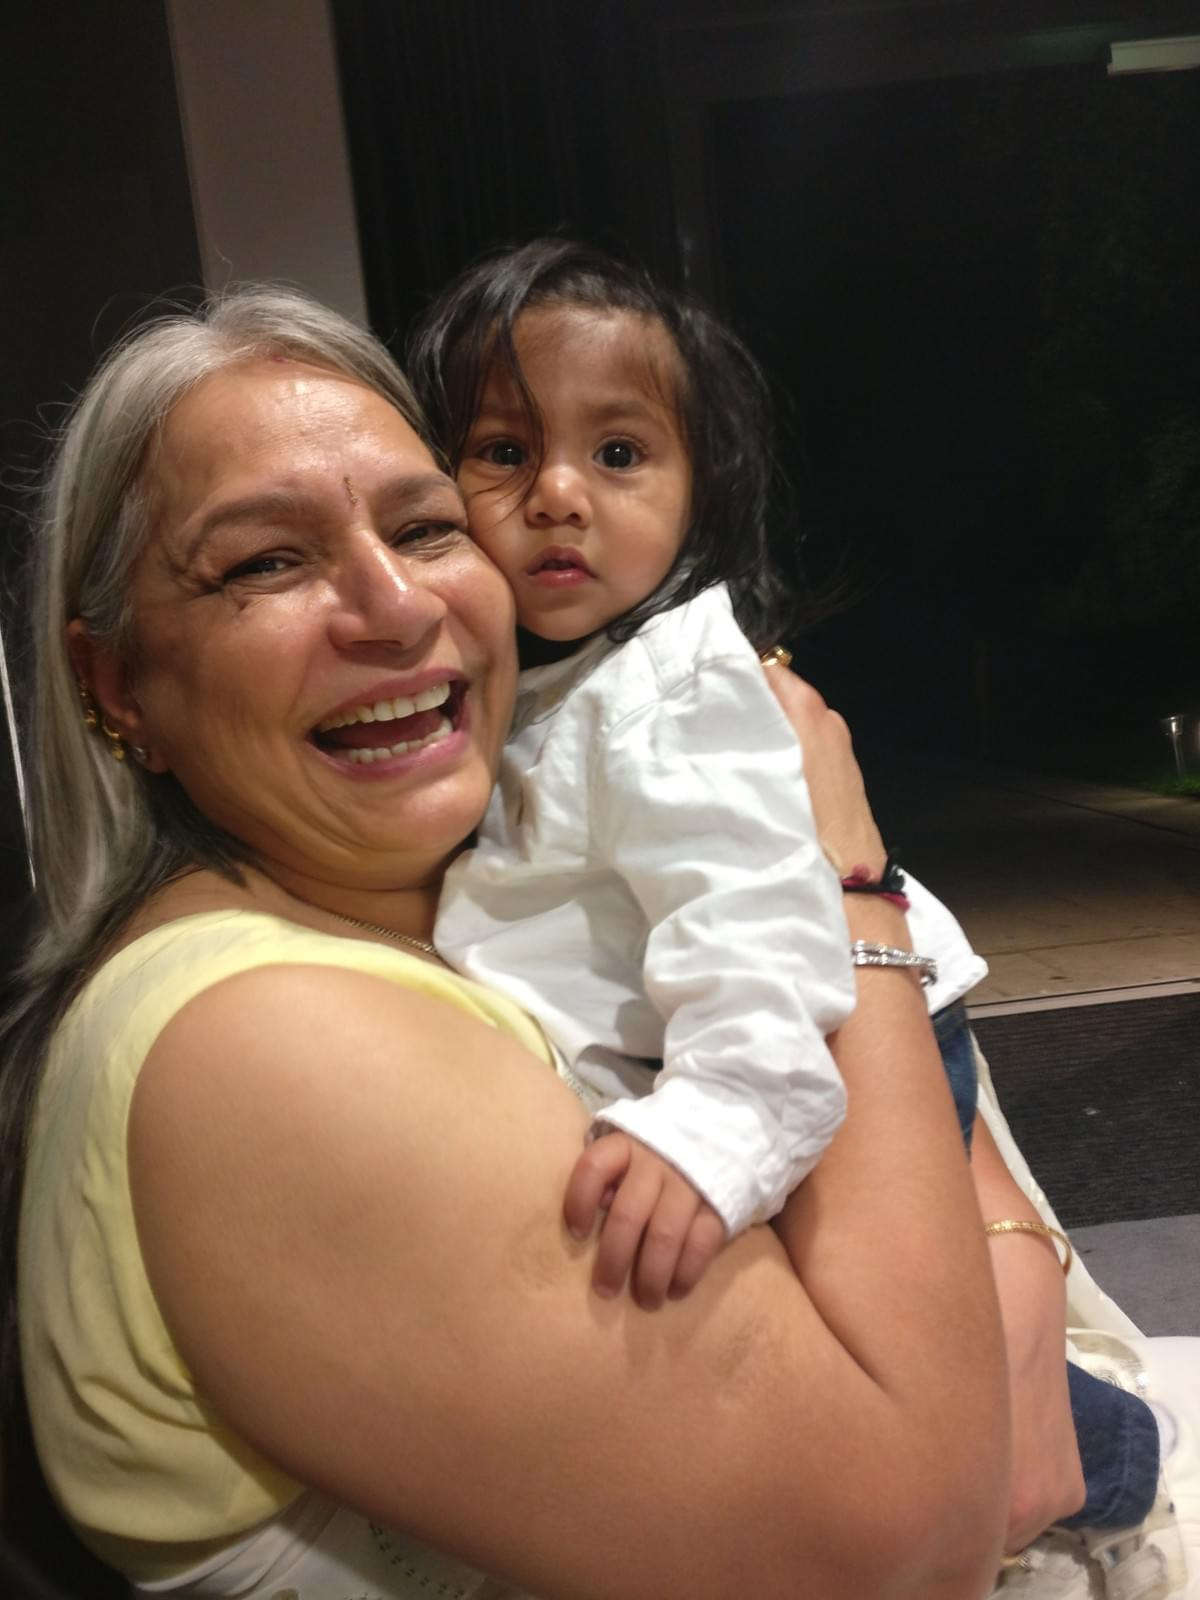 Our mum and her grandson